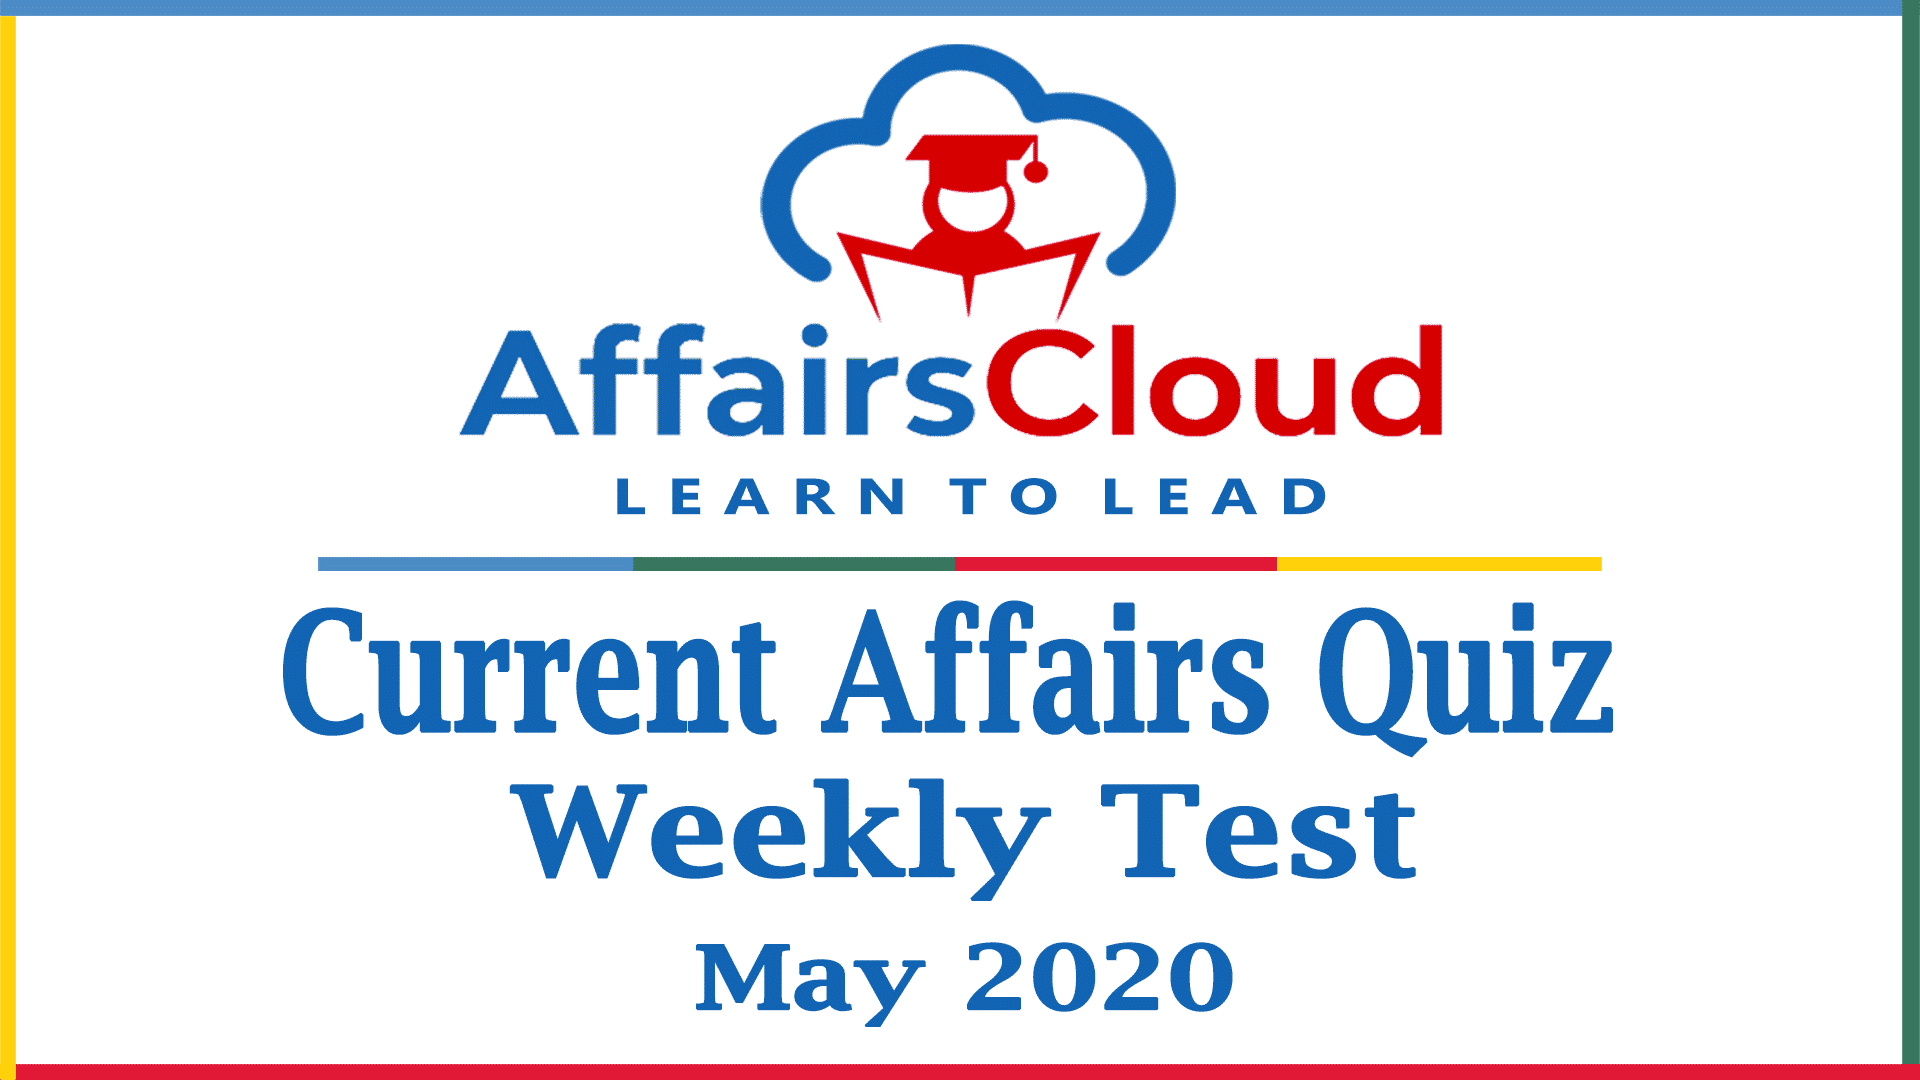 Current Affairs Weekly Test May 2020